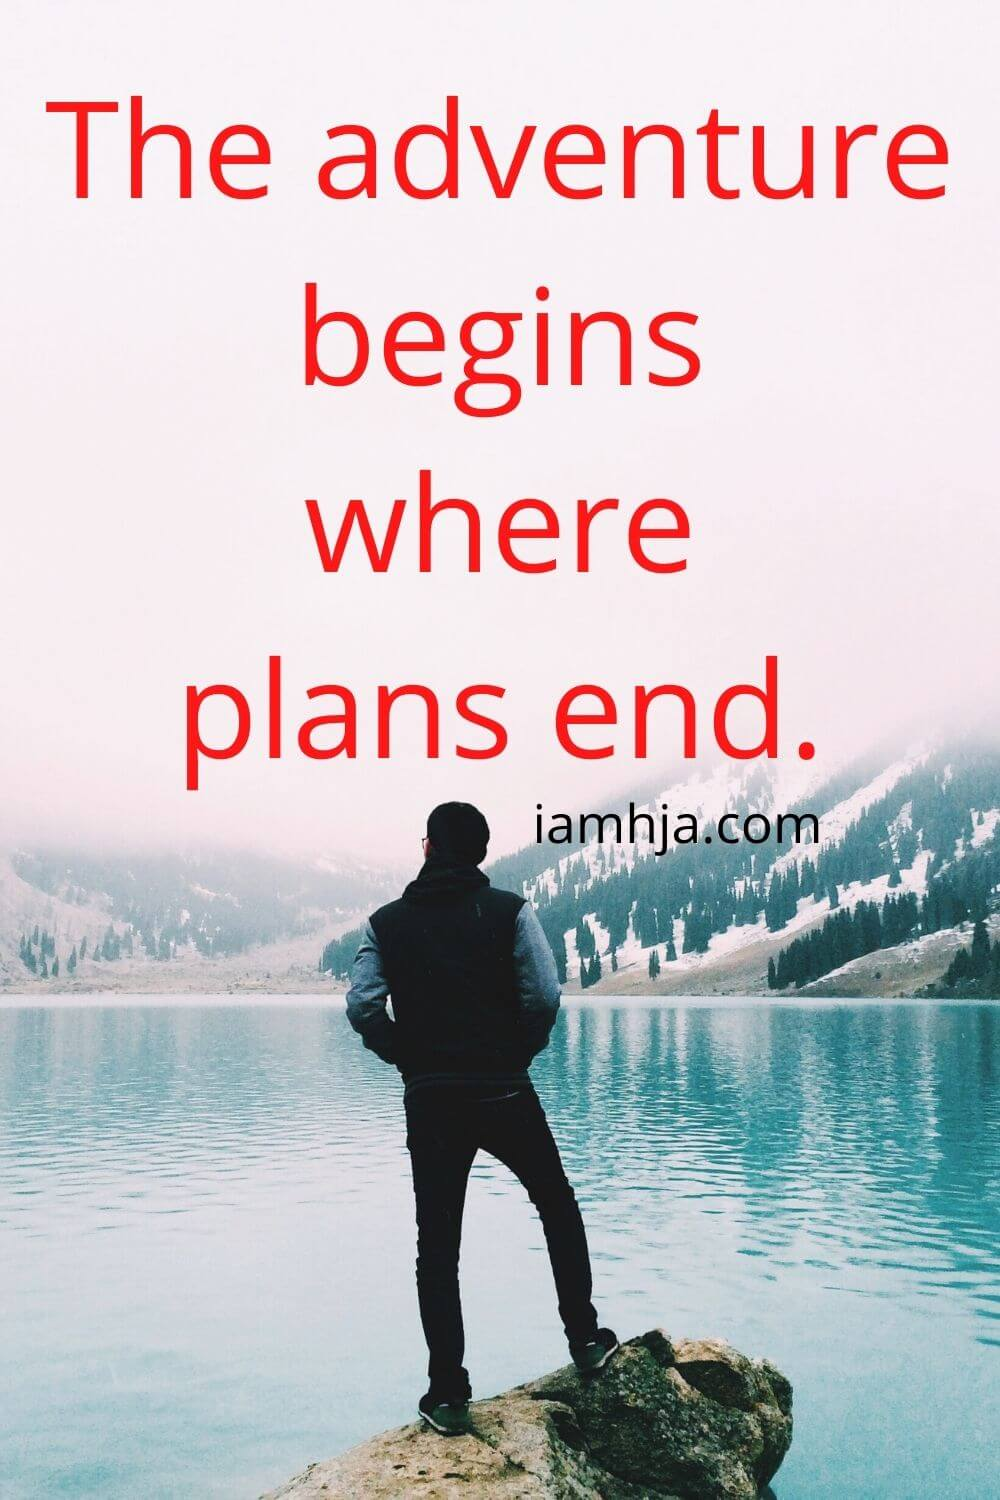 The adventure begins where plans end.